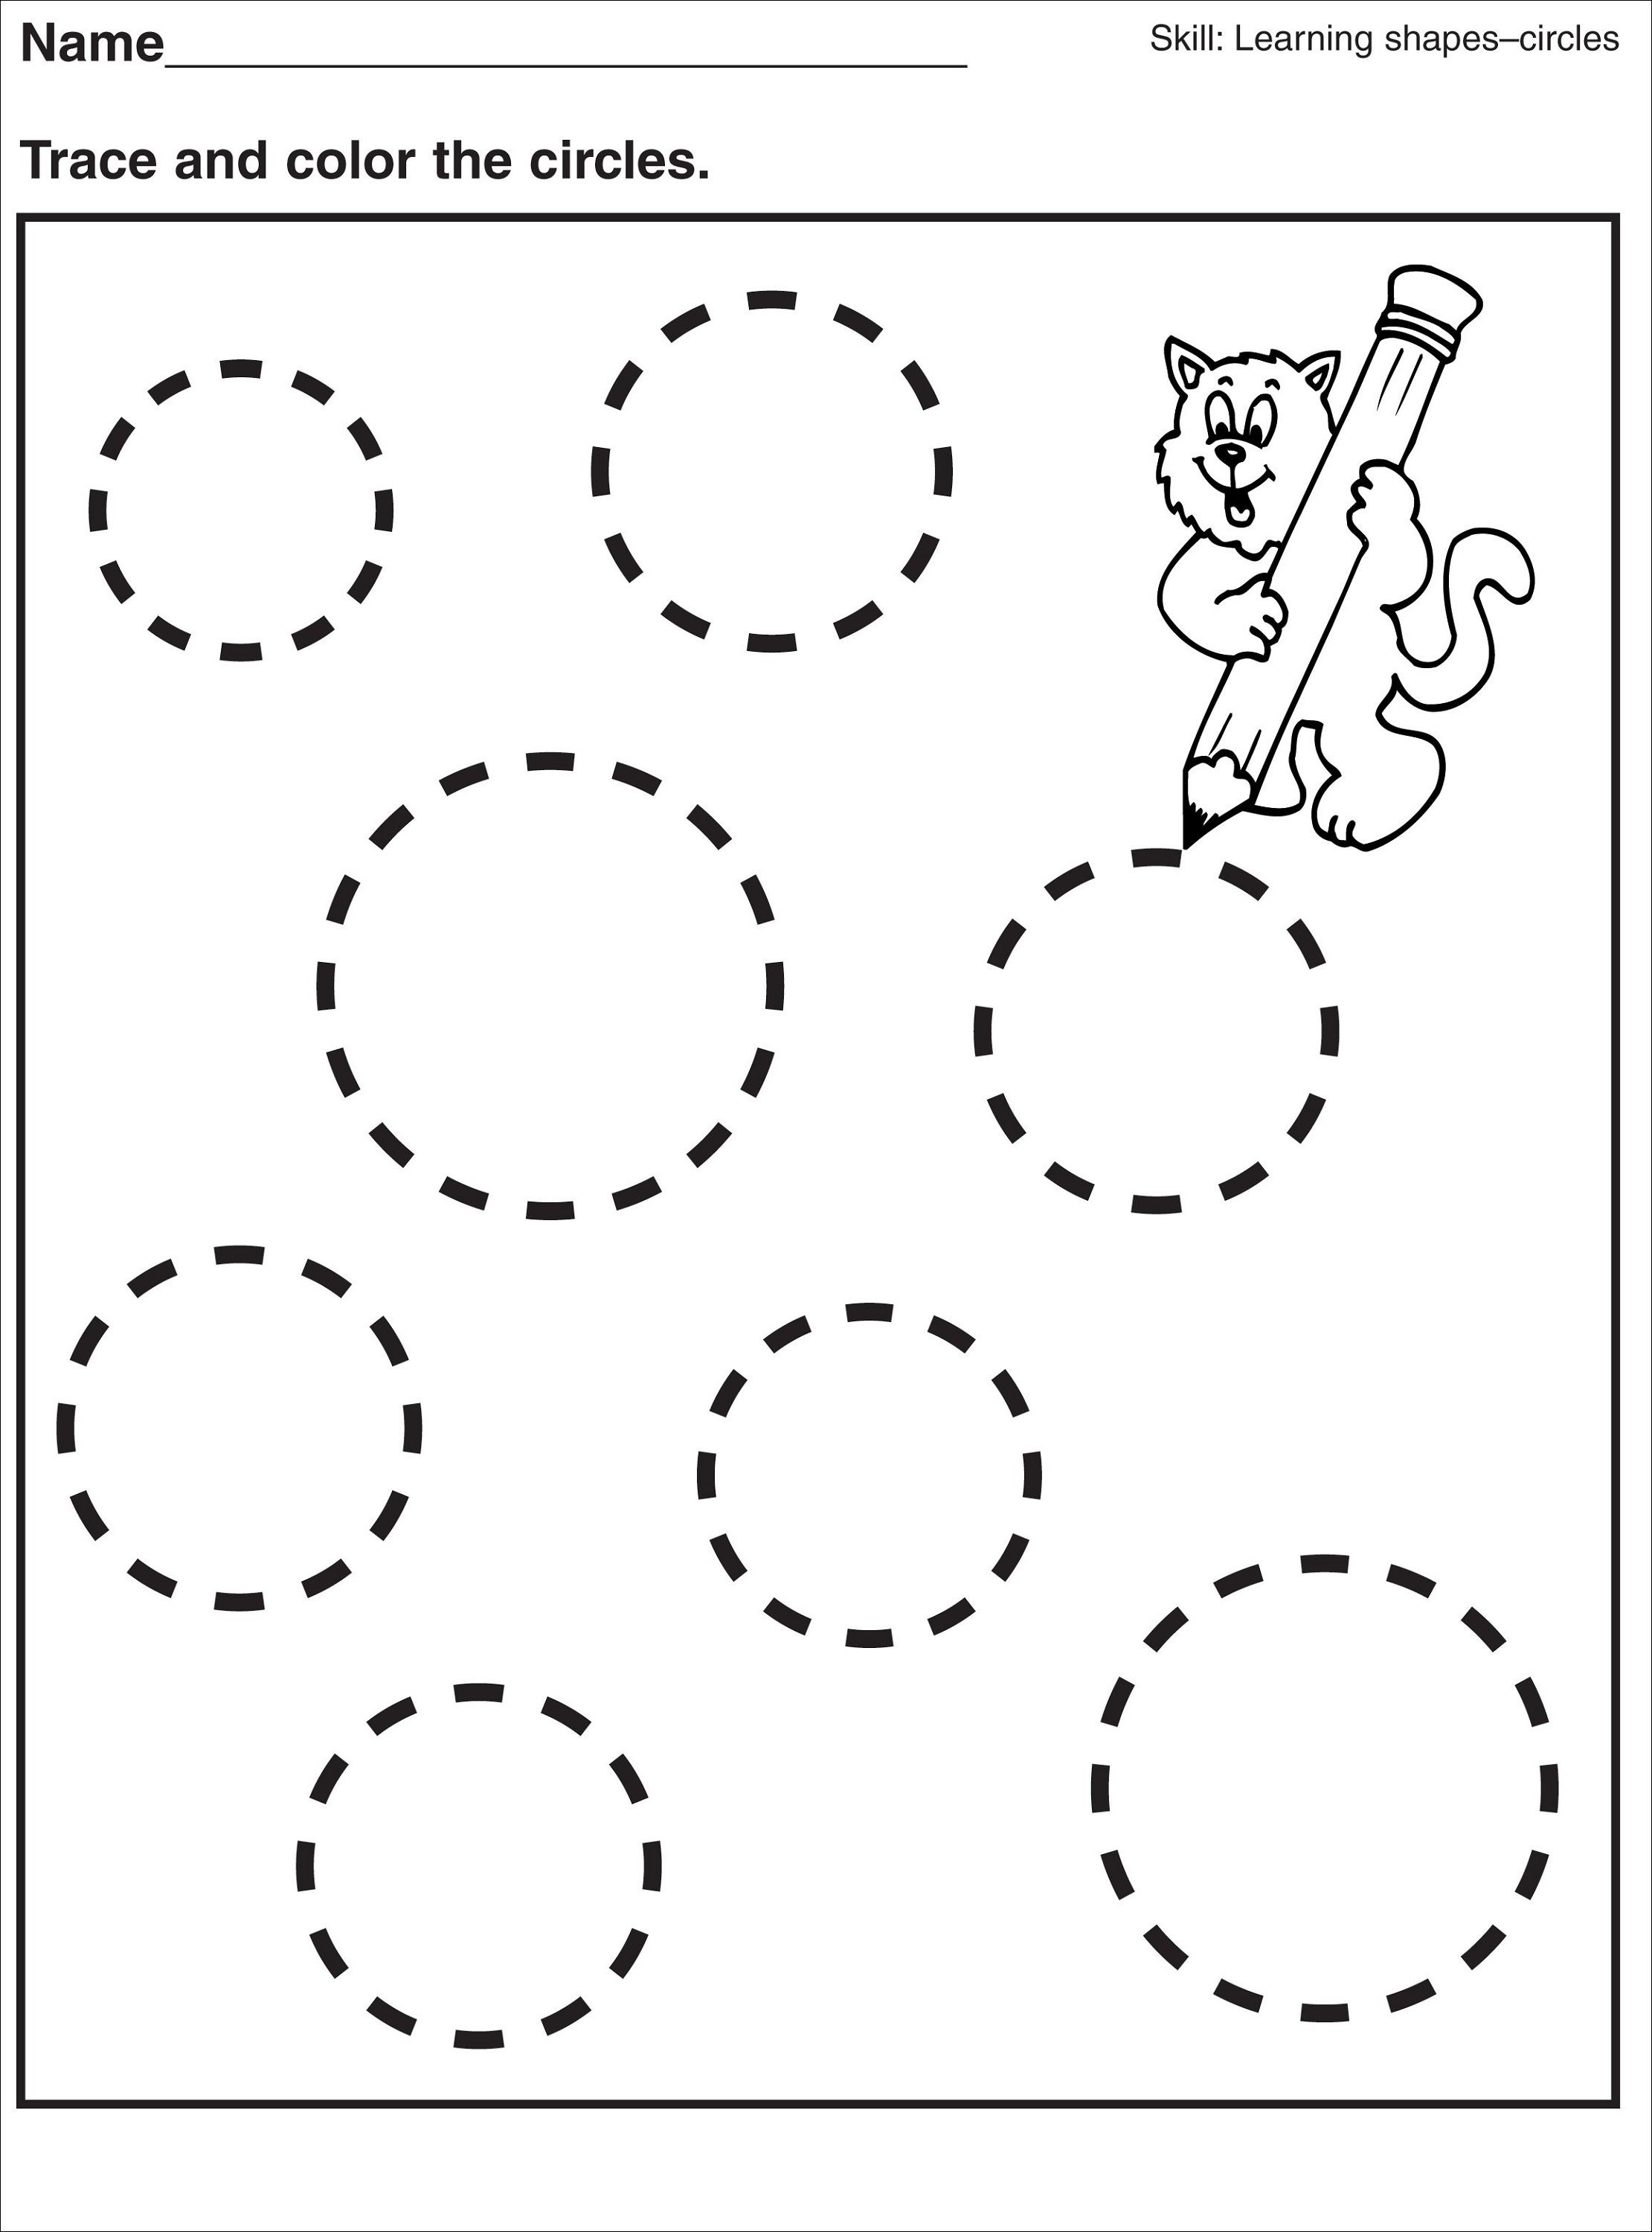 Tracing Pages For Preschool   Kids Worksheets Printable - Free Printable Preschool Name Tracer Pages